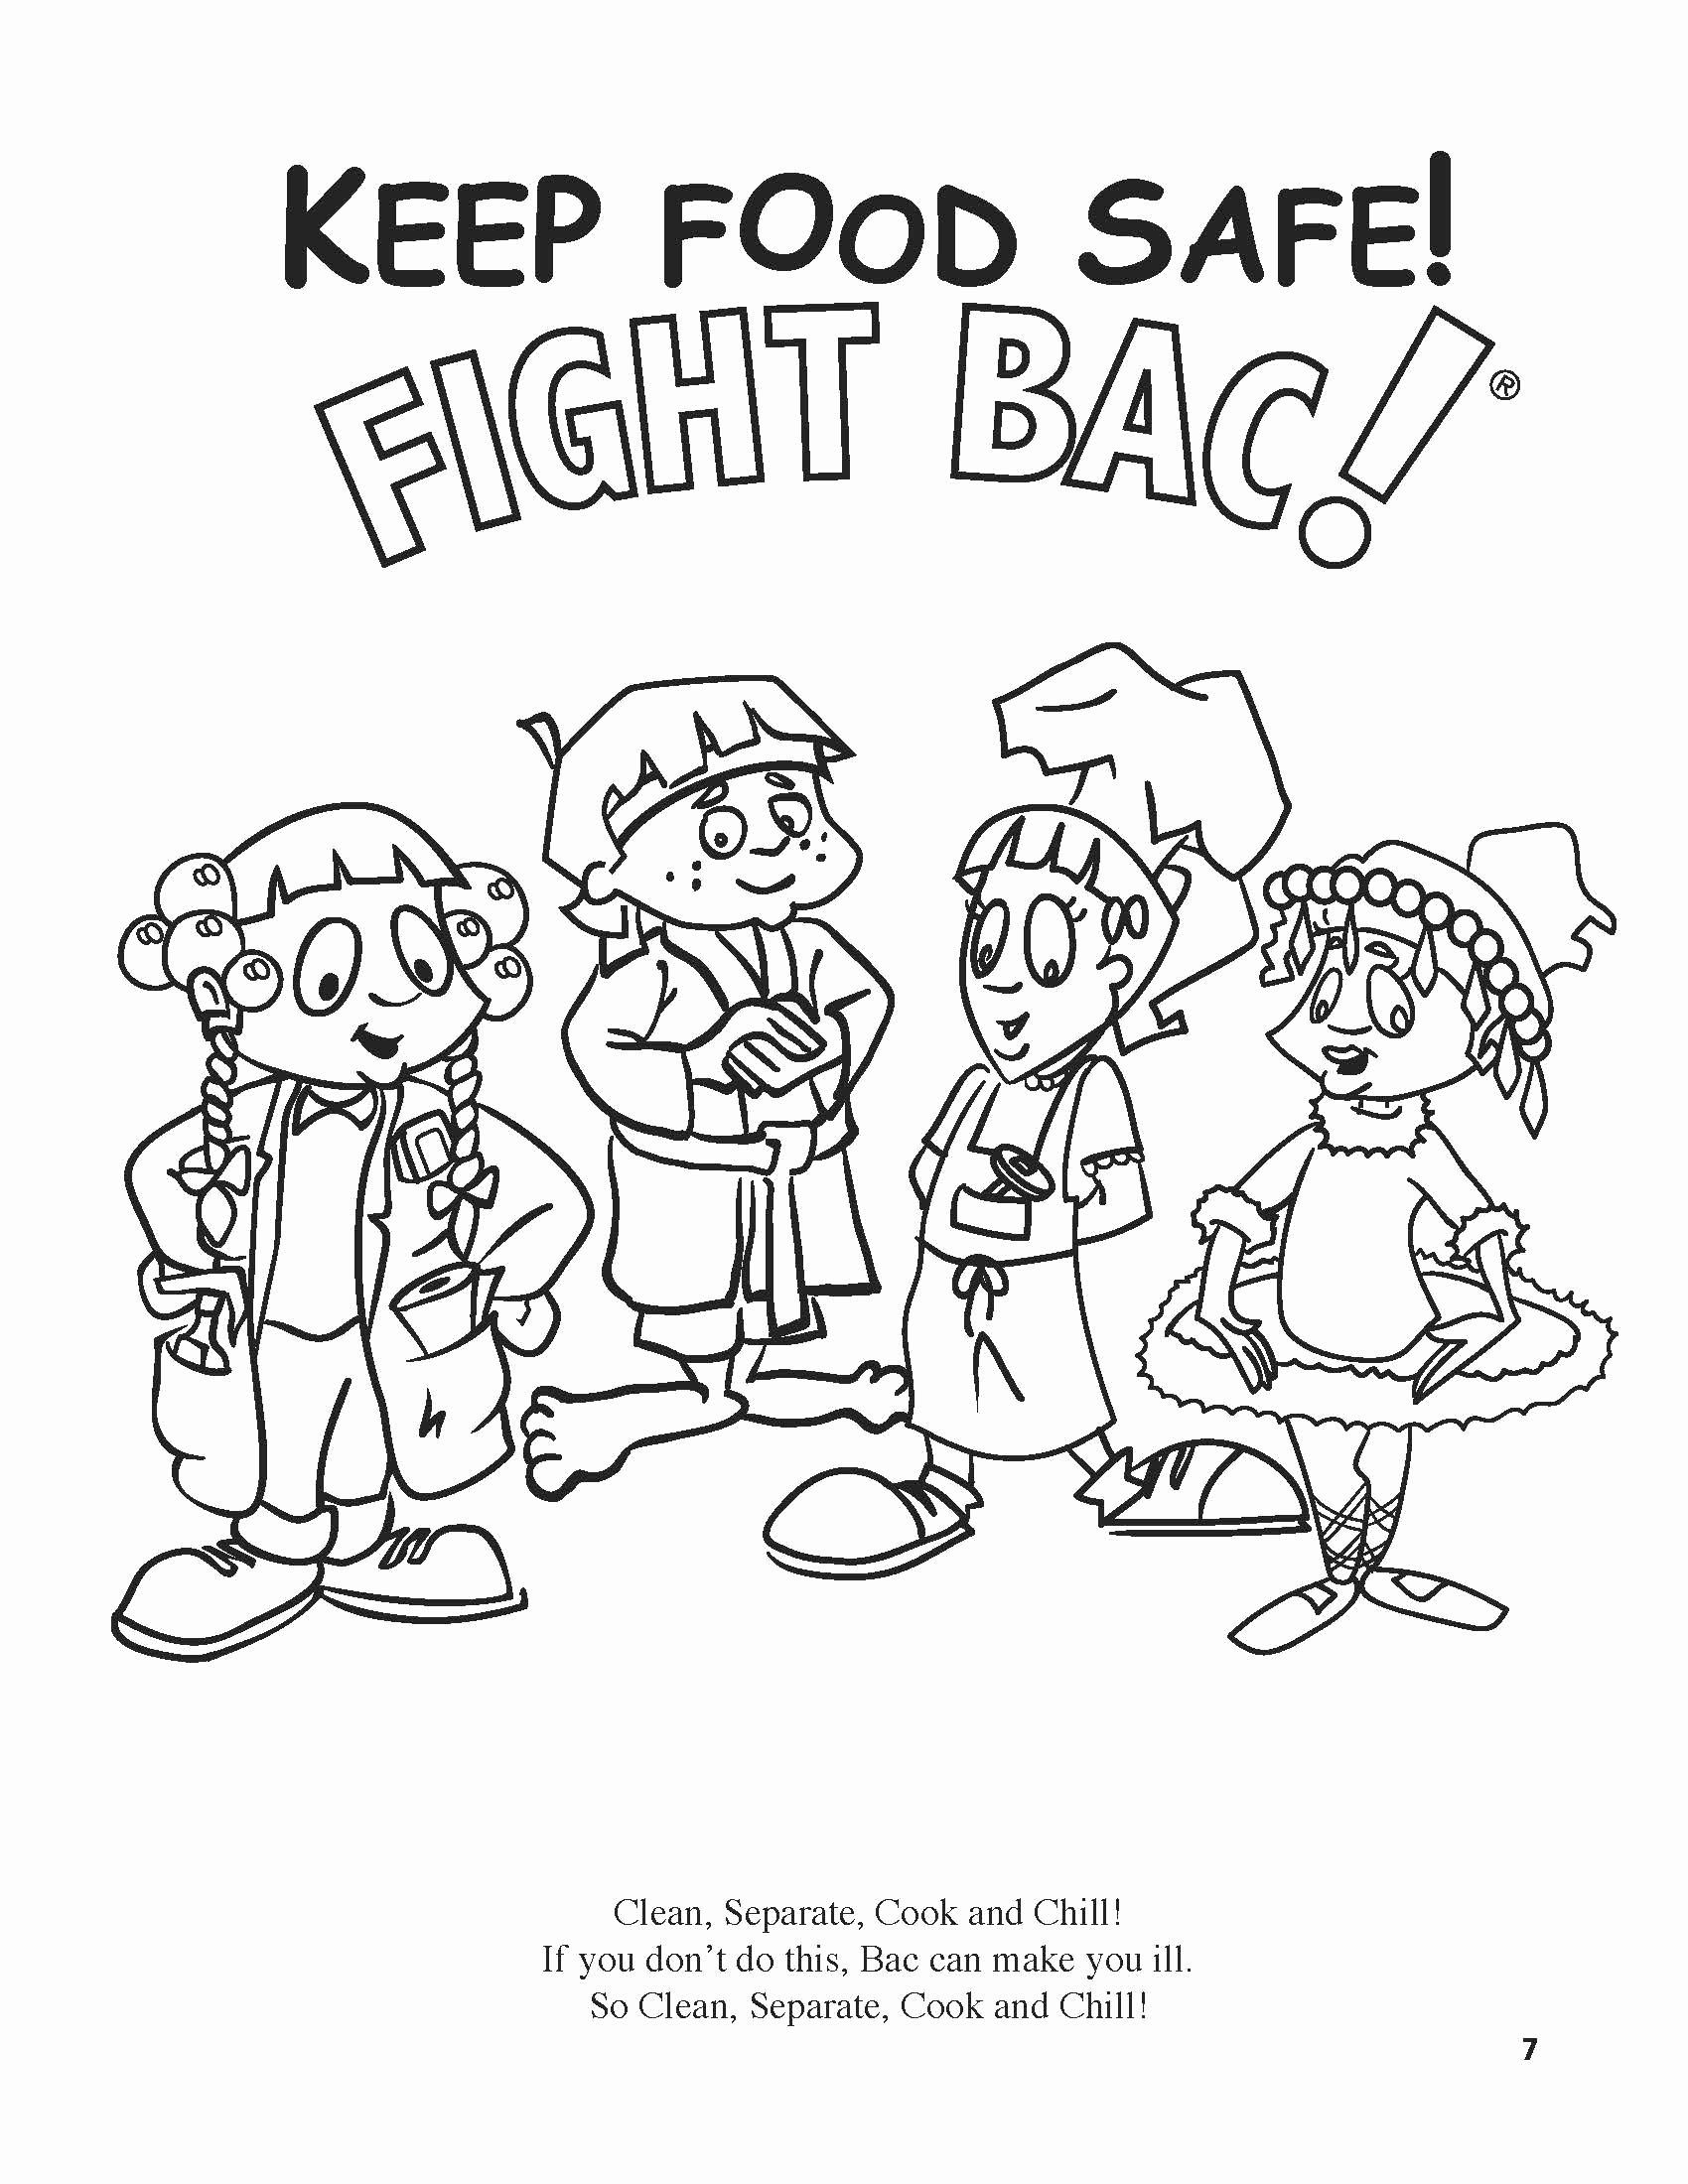 Summer Safety Coloring Pages Unique Kitchen Safety For